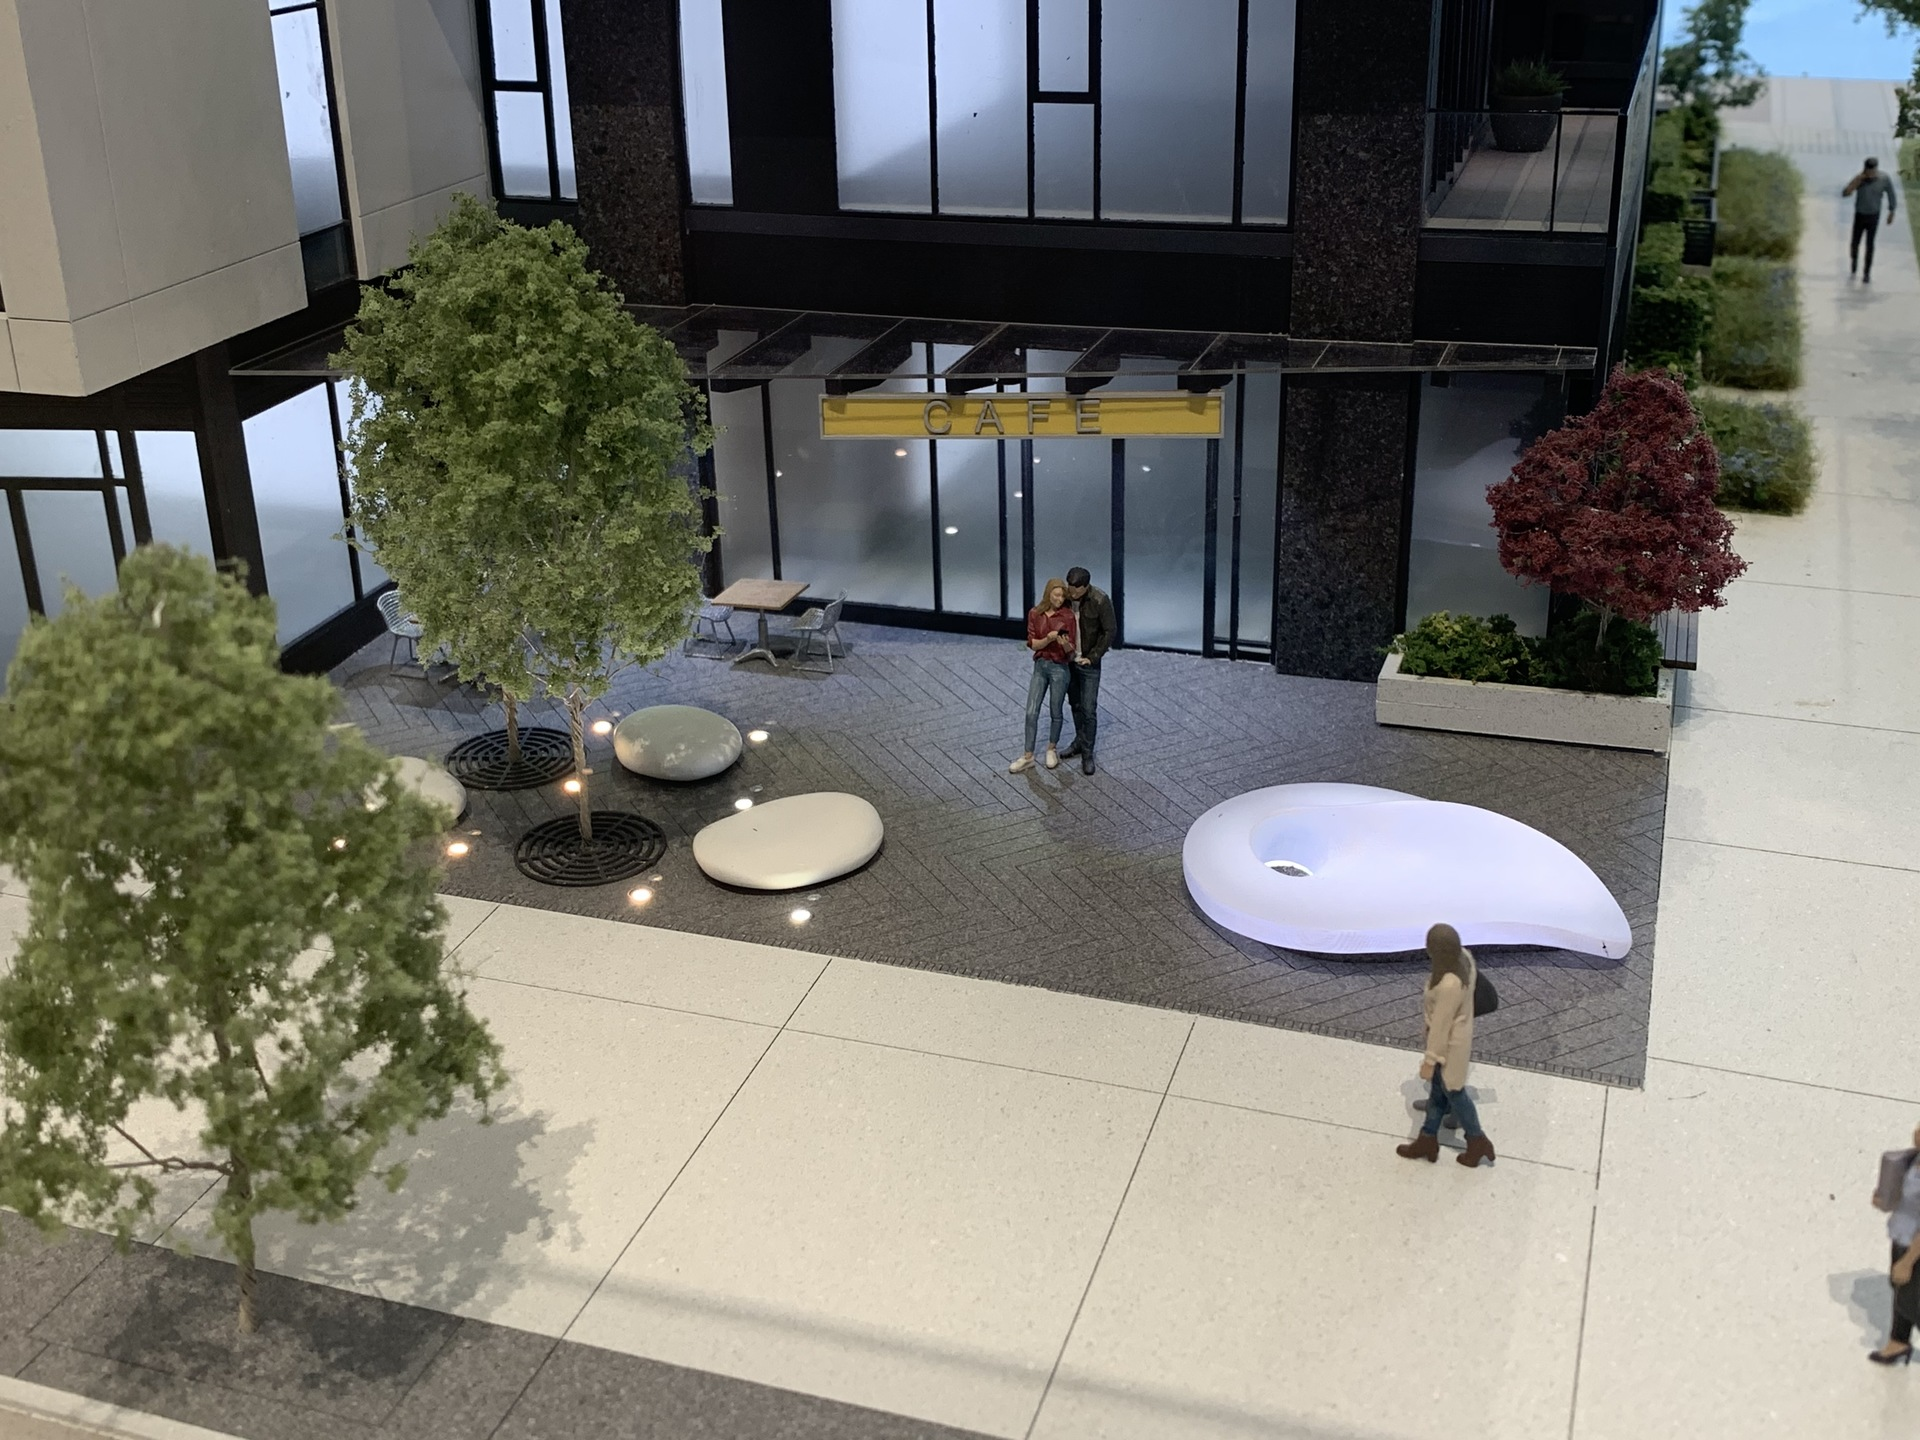 g Legacy will feature a ground floor cafe with sculpture at Legacy on Dunbar (4464 Dunbar Street, Dunbar, Vancouver West)